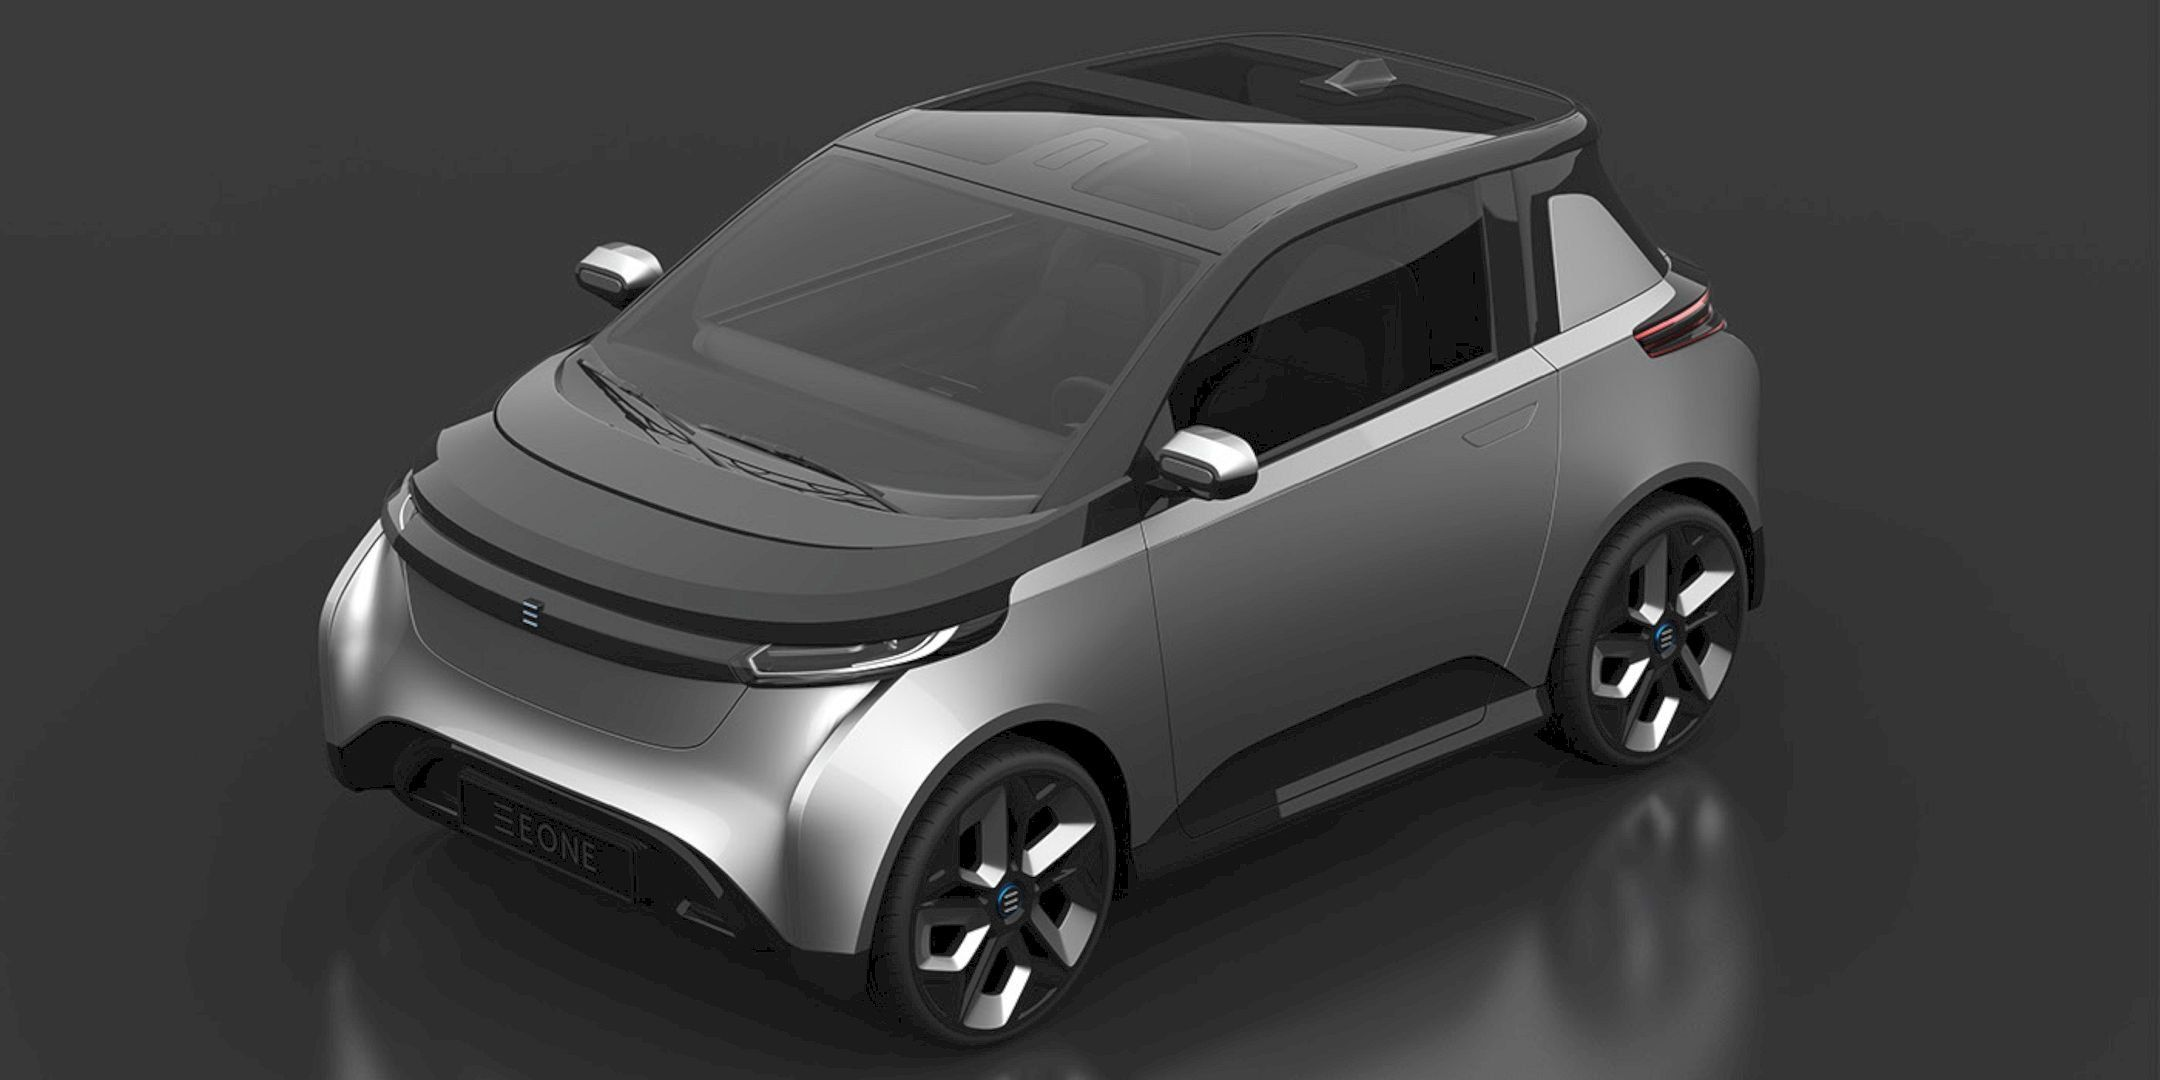 Two Person Electric Concept Vehicle Software Help The Car Chevrolet Fnr Viu Futuristic Eone A With Uncomplicated Design Productdesign